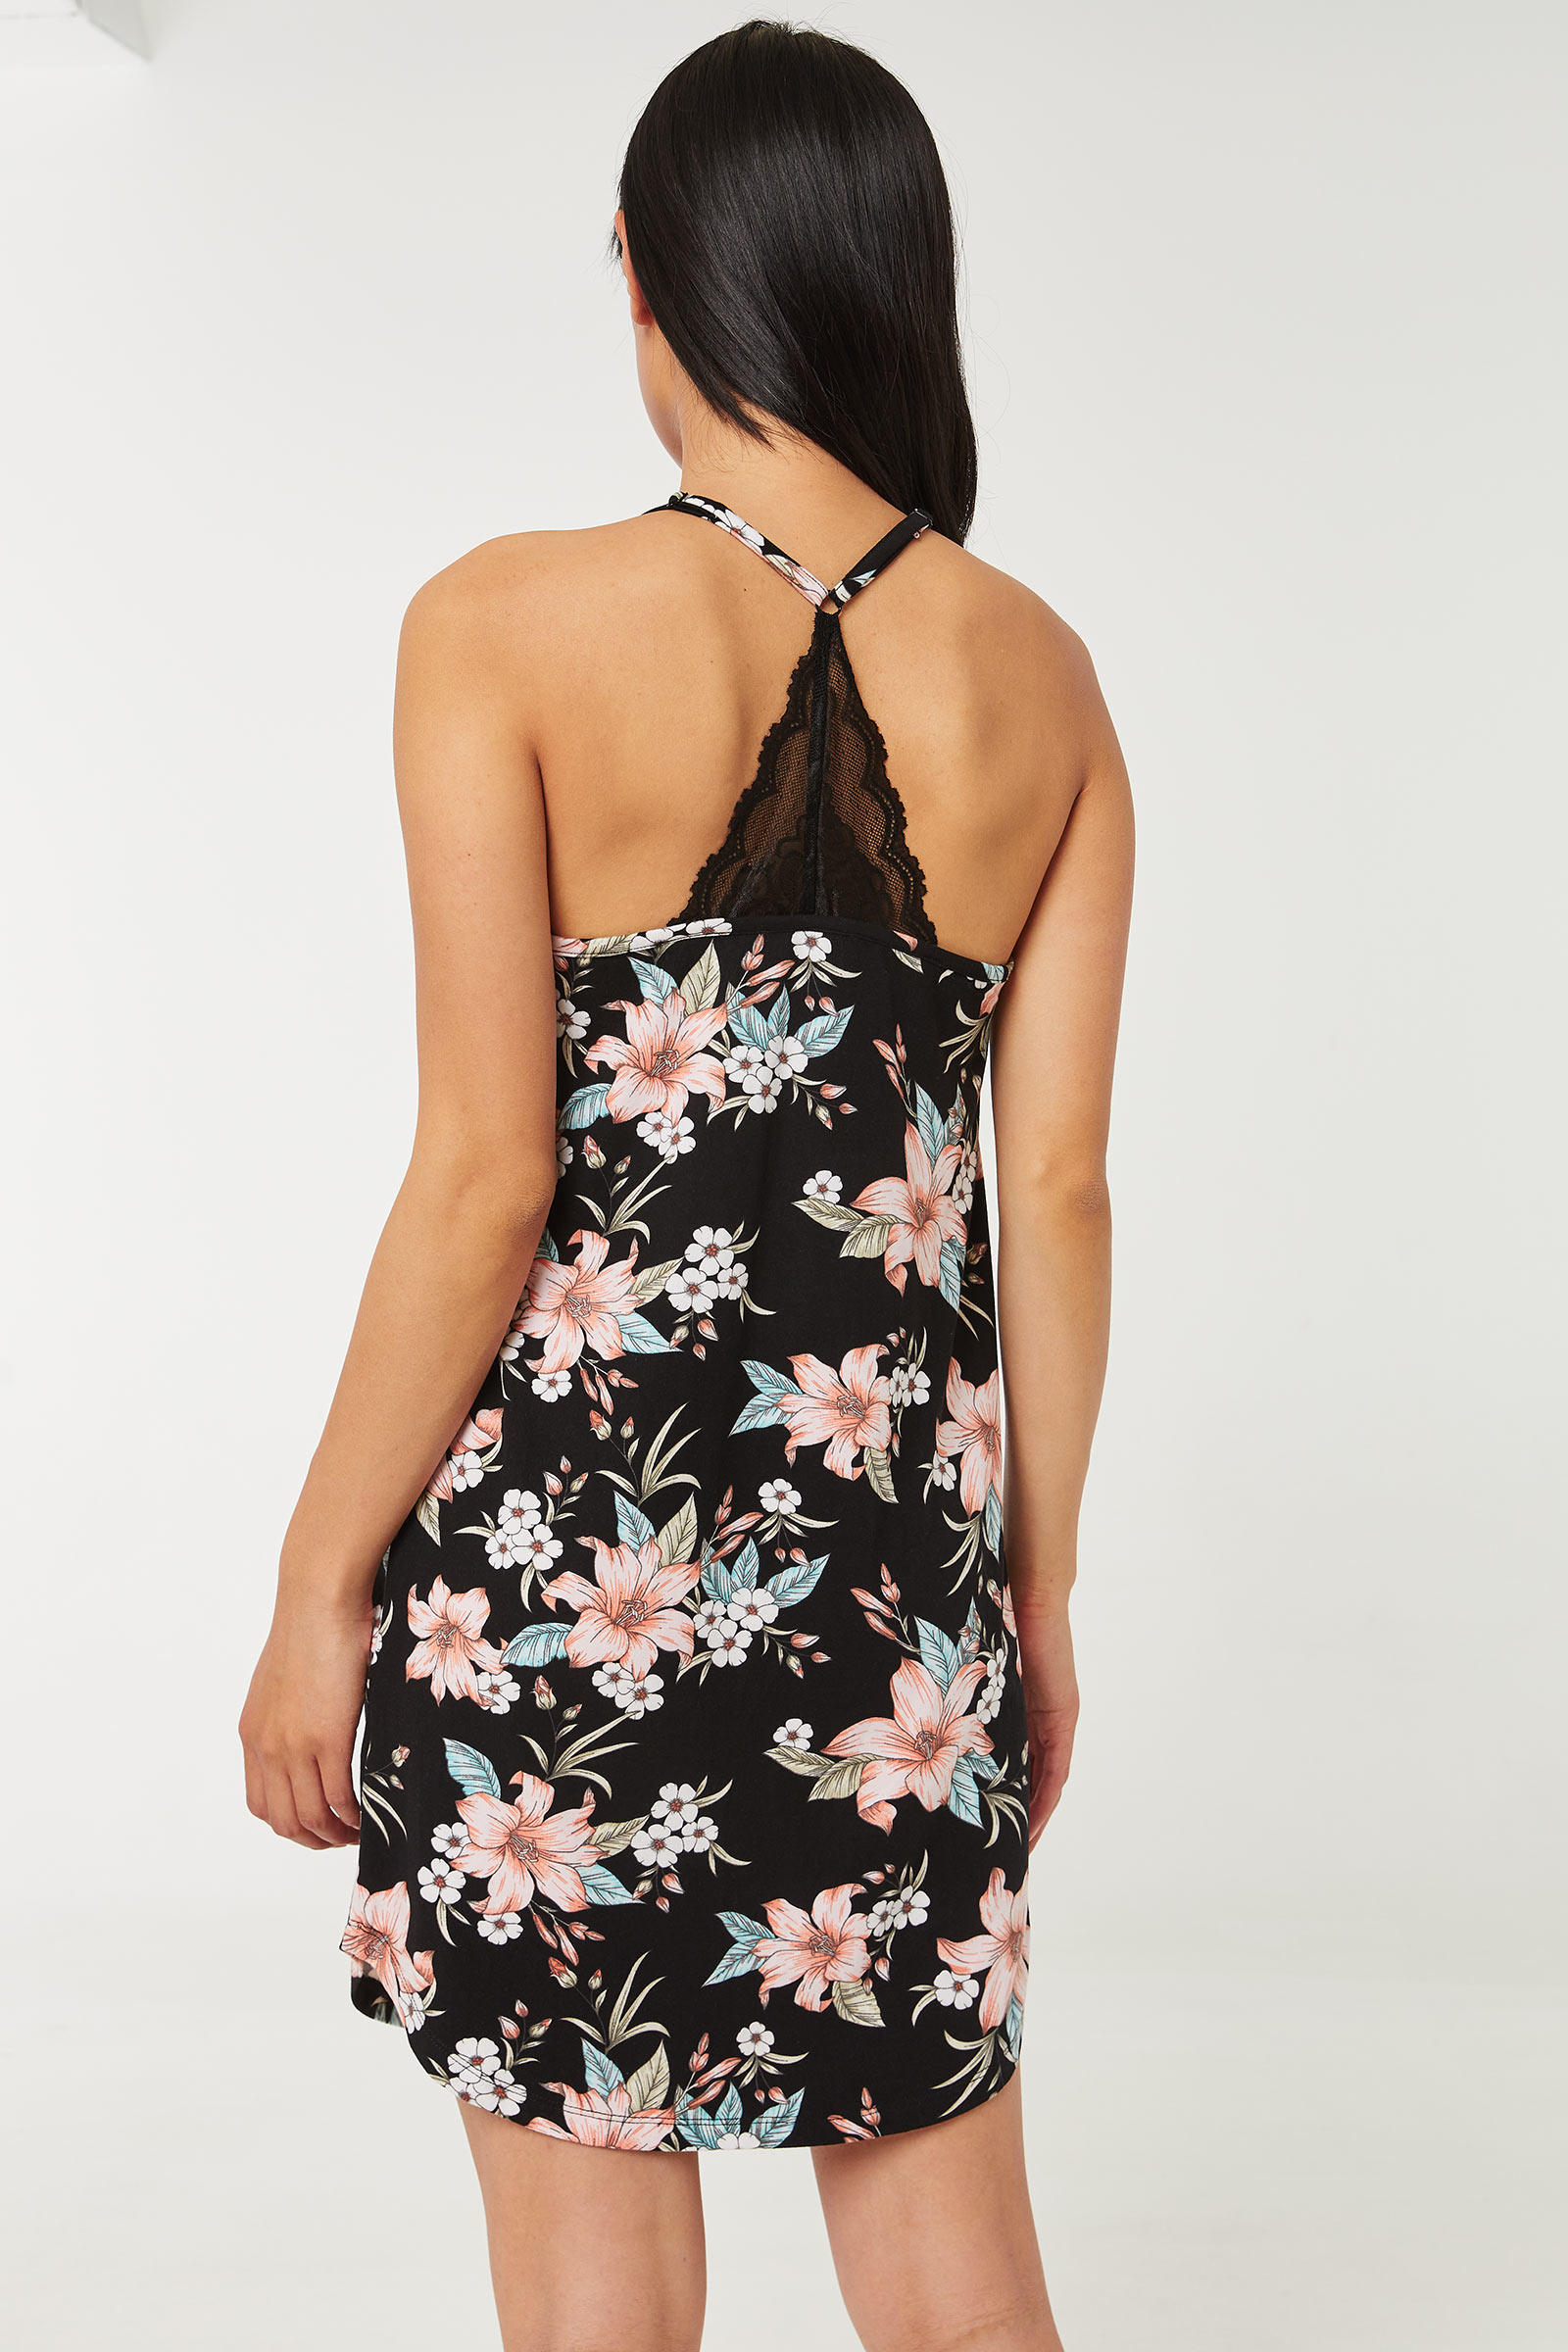 Floral Nightdress with Lace back